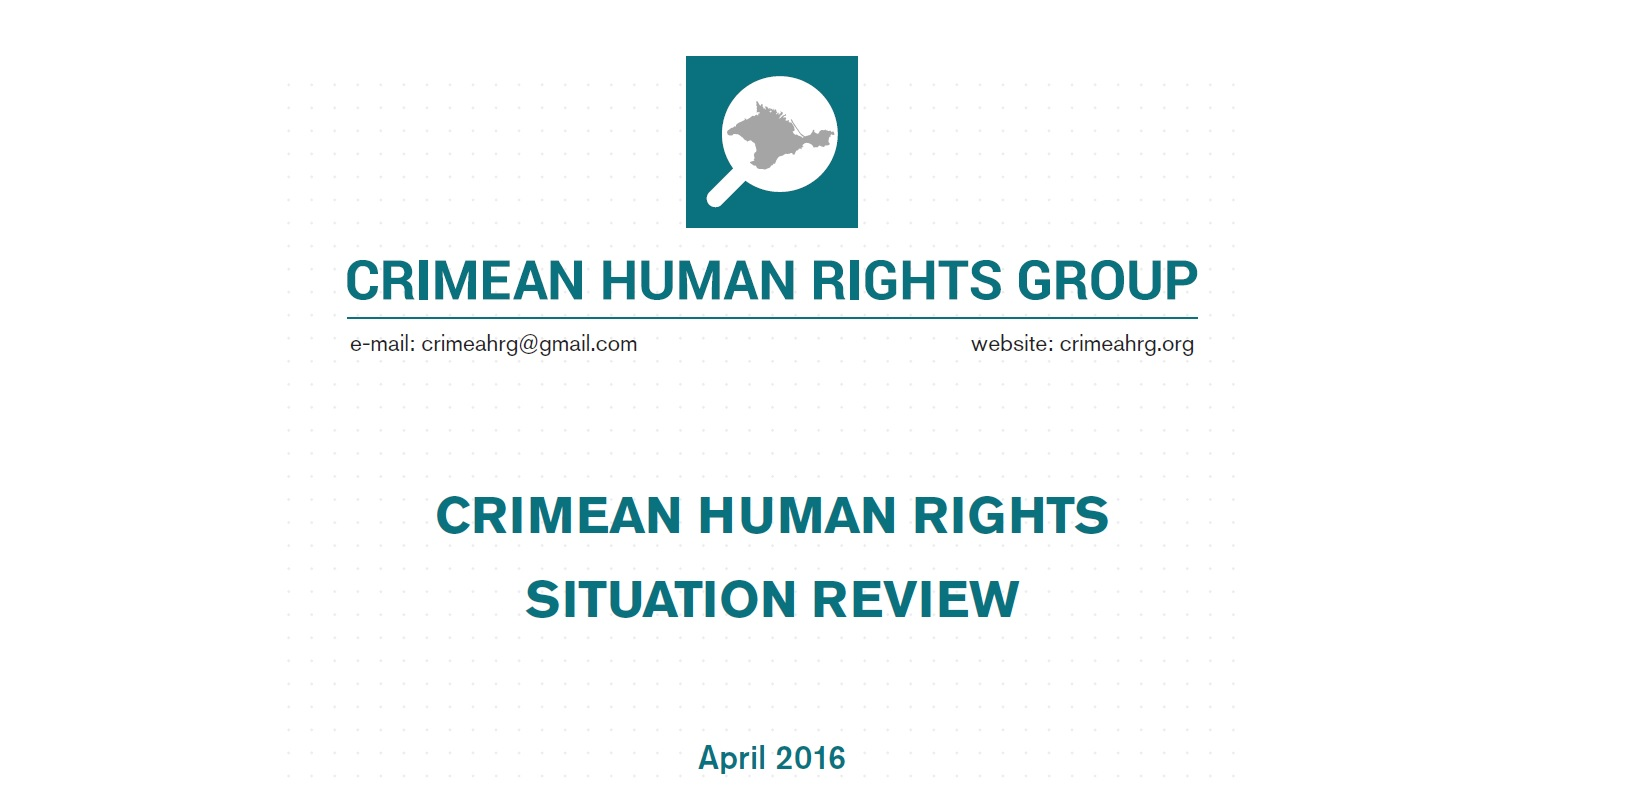 Review on the human rights situation in Crimea in April 2016